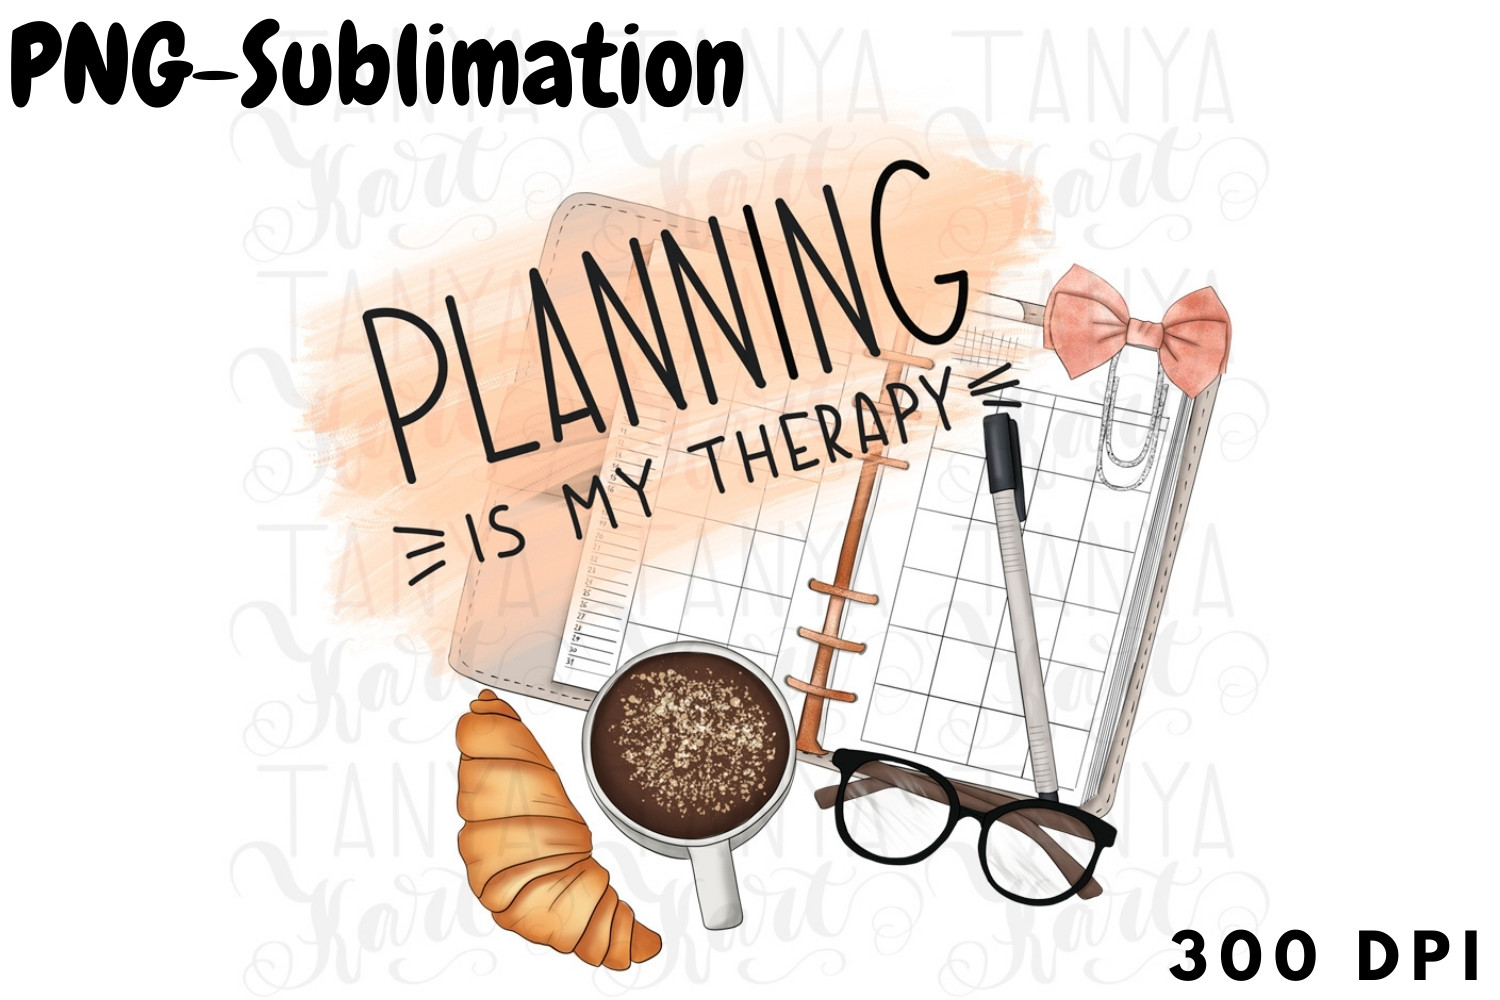 Planning is My Therapy Png Sublimation SVG File